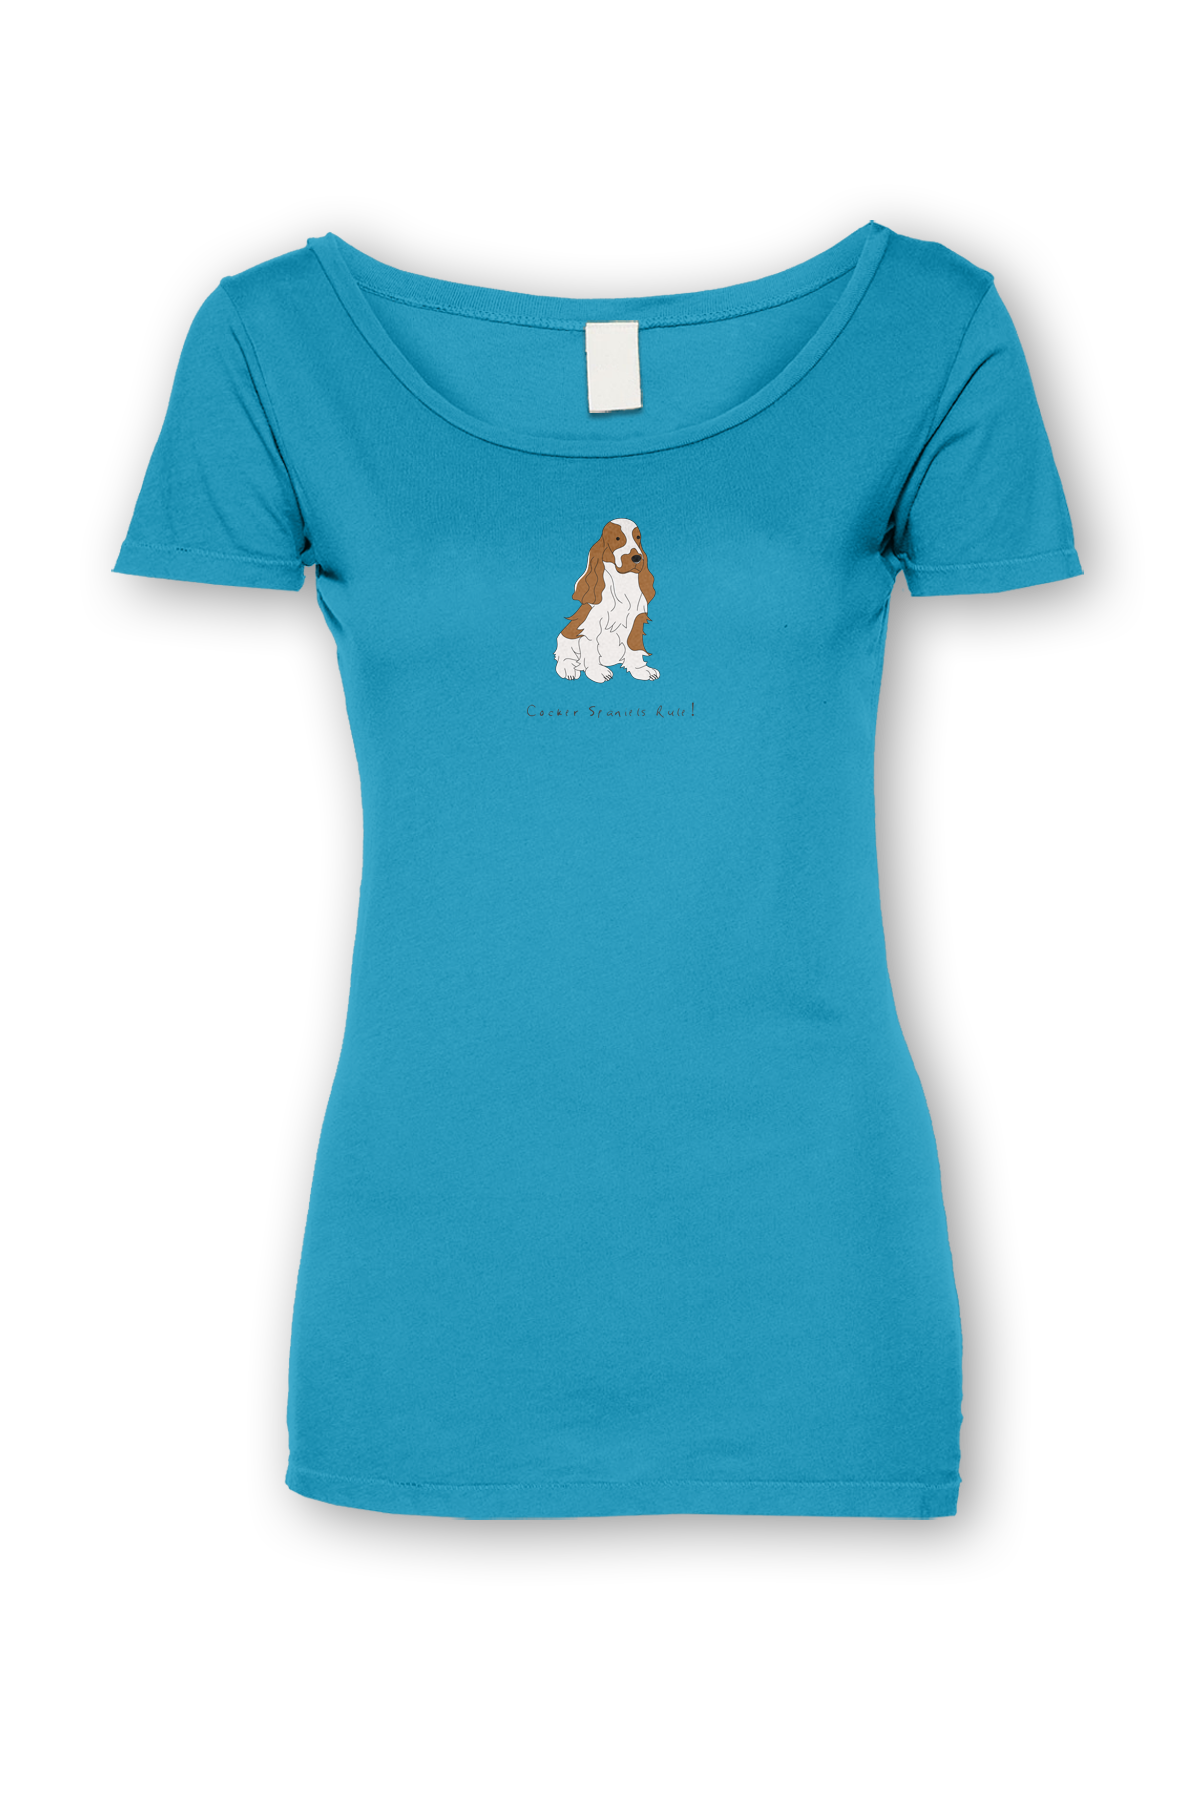 Ladies Sheer Scoop Neck T-Shirt - Cockerpoos Rule! Caribbean Blue